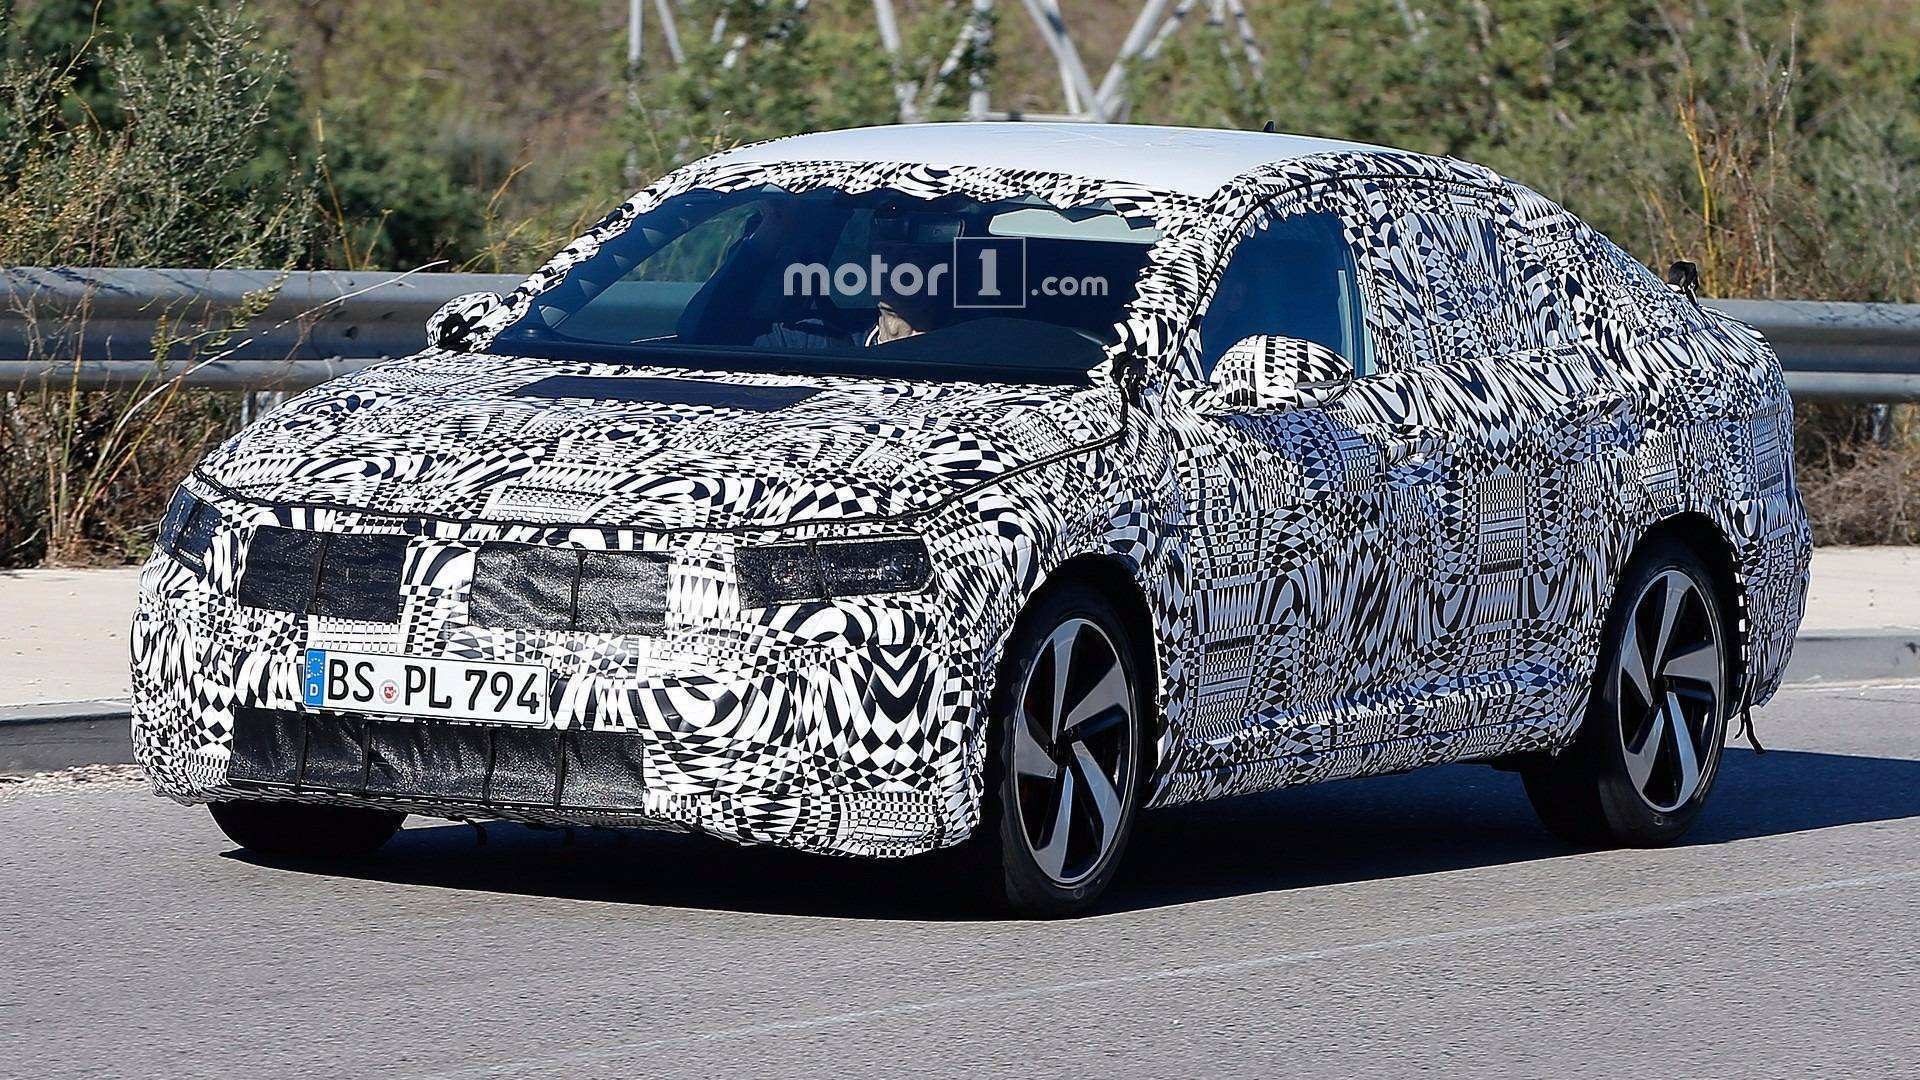 12 New 2019 Vw Jetta Spy Shots Release with 2019 Vw Jetta Spy Shots